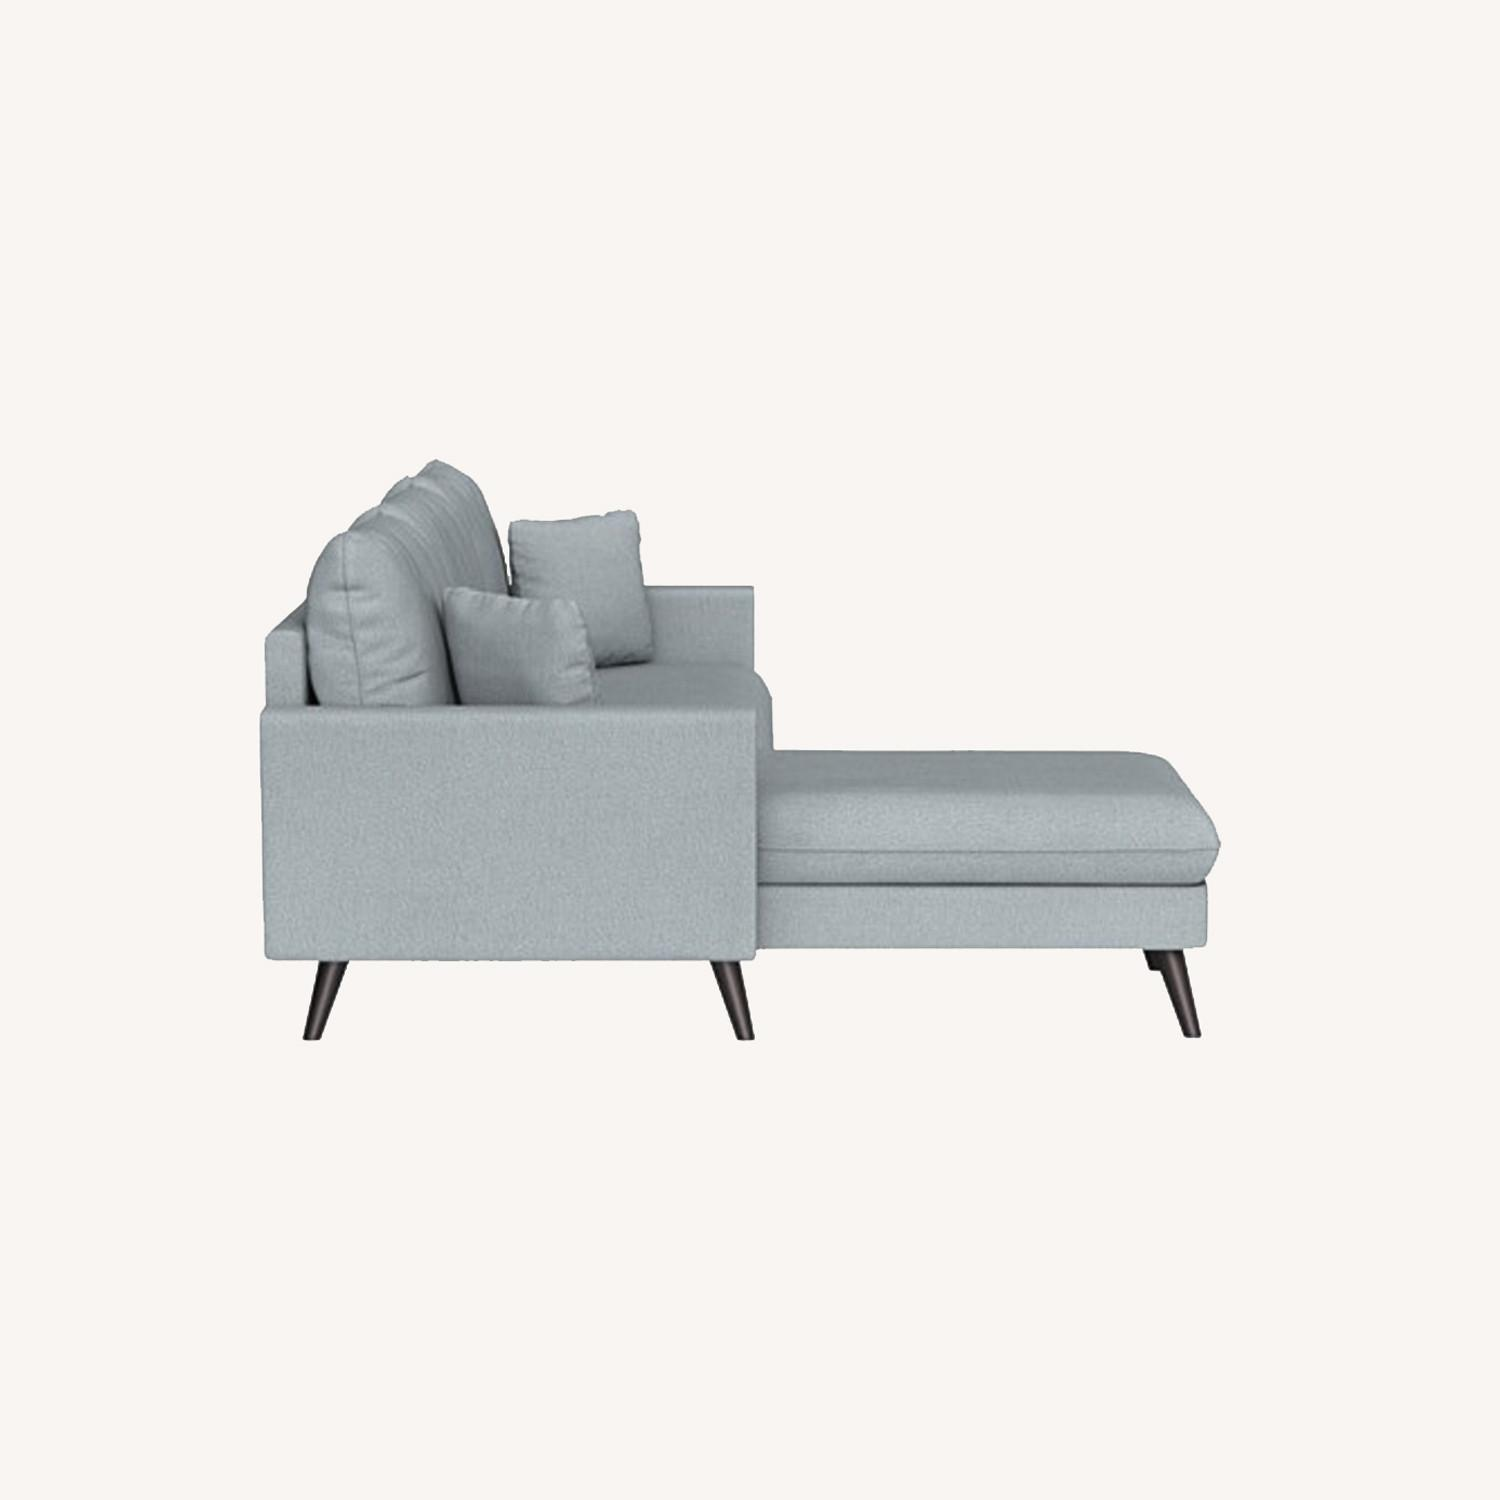 Inside Weather Custom Milo Sectional in Ash - image-0